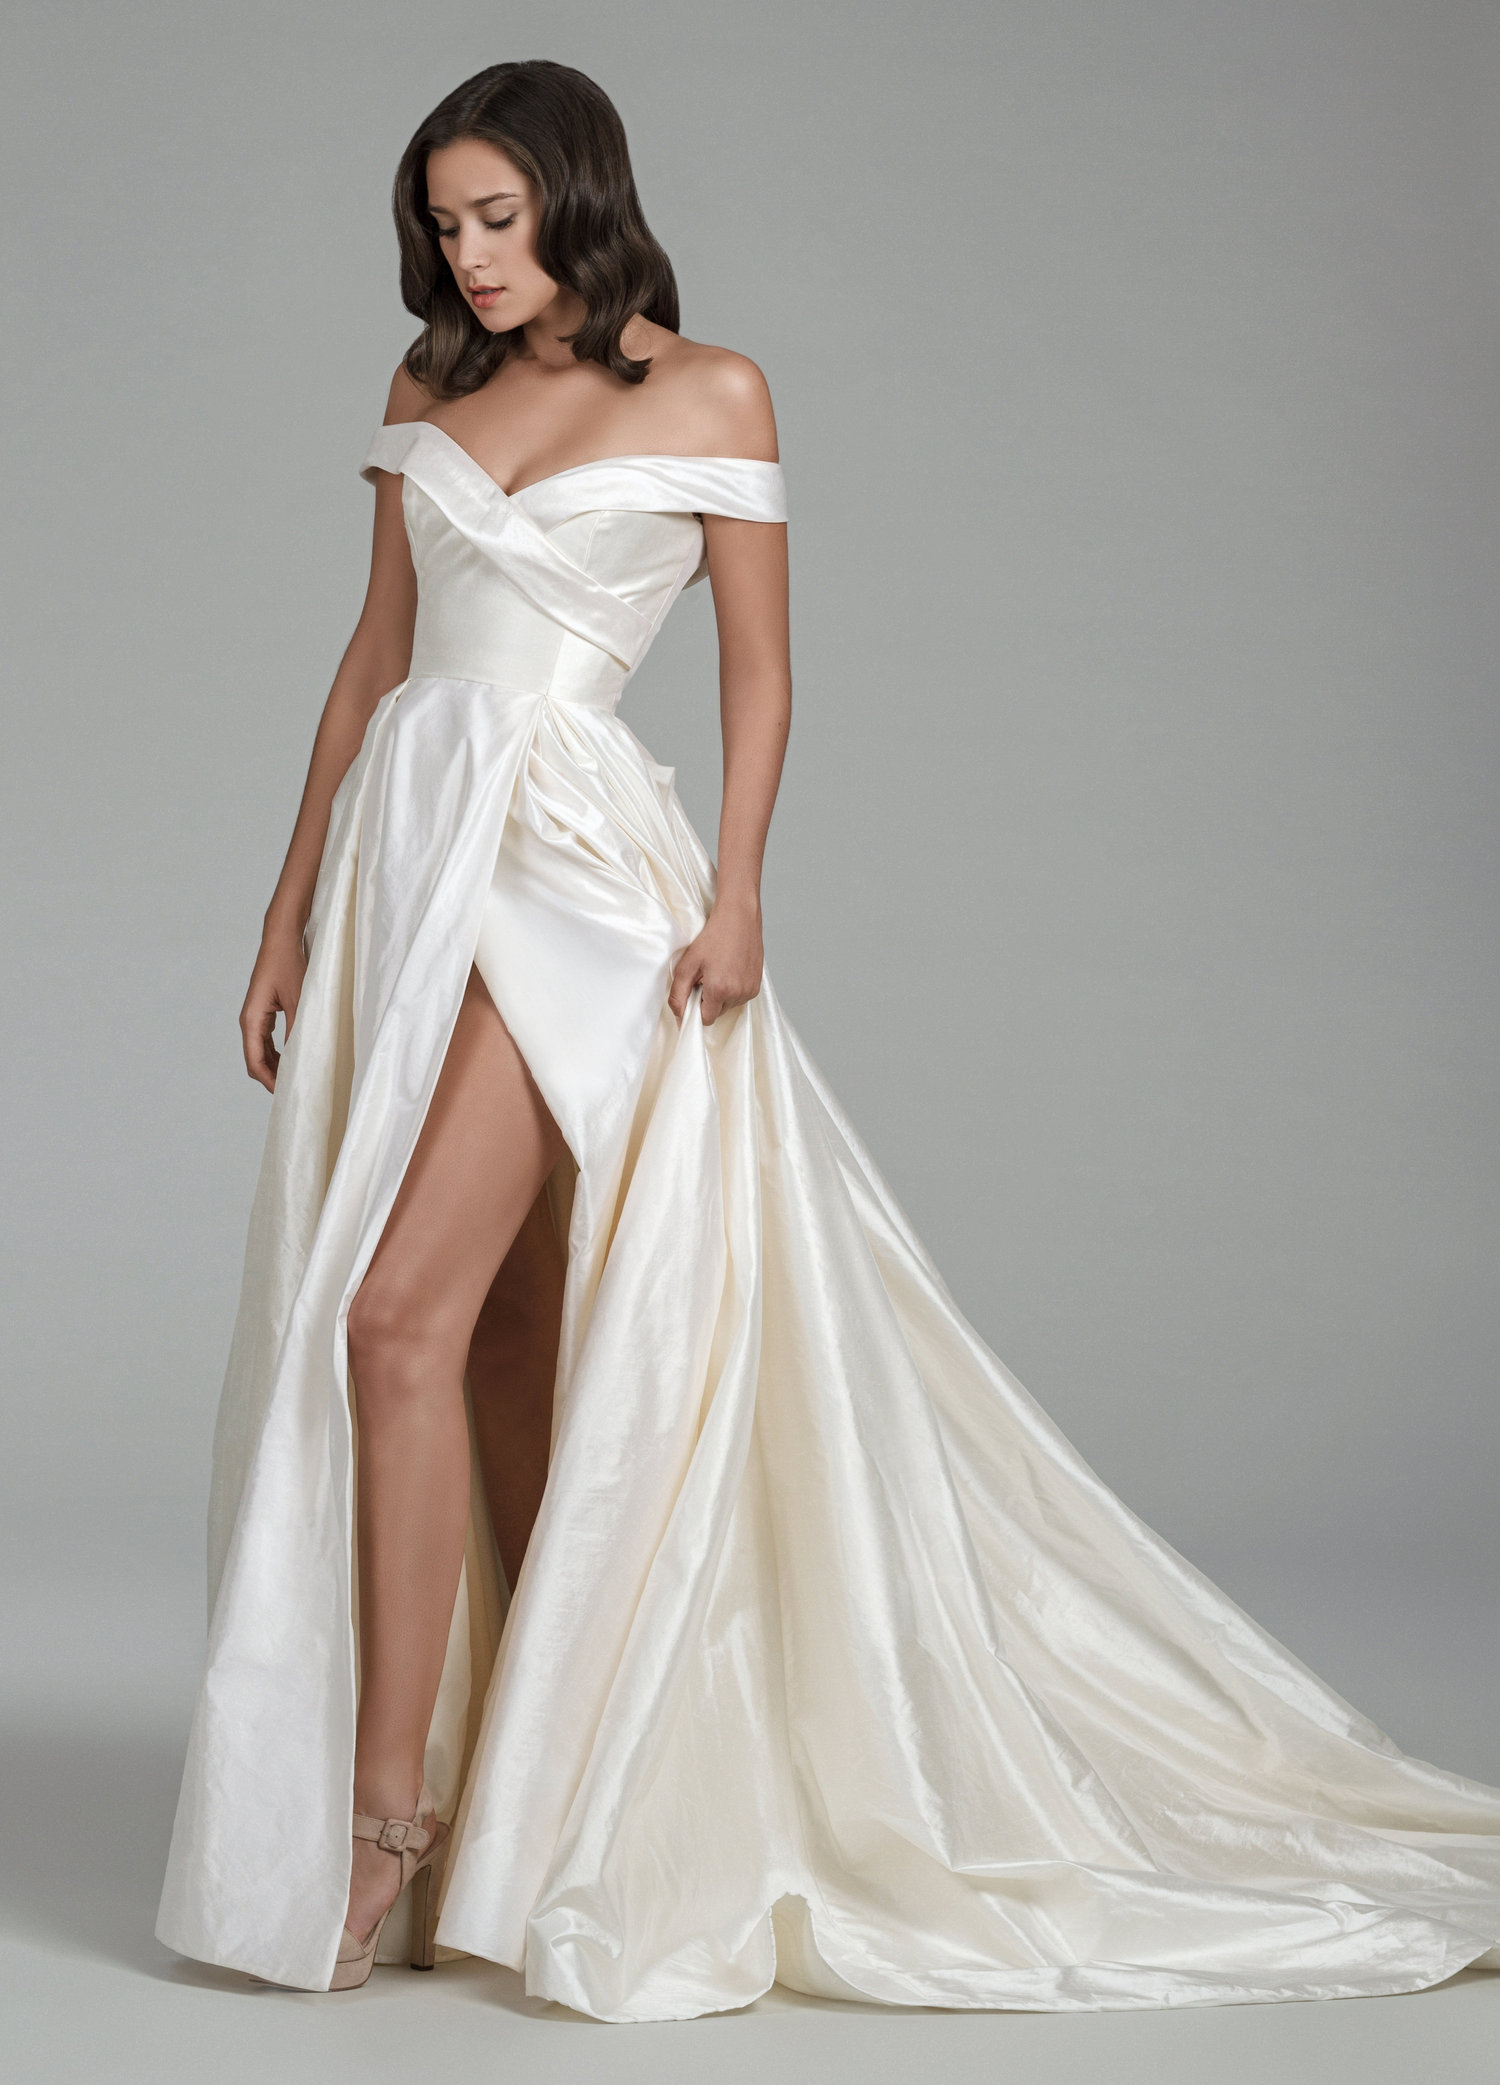 Jlm Couture Wedding Dresses With Pockets Jlm Couture